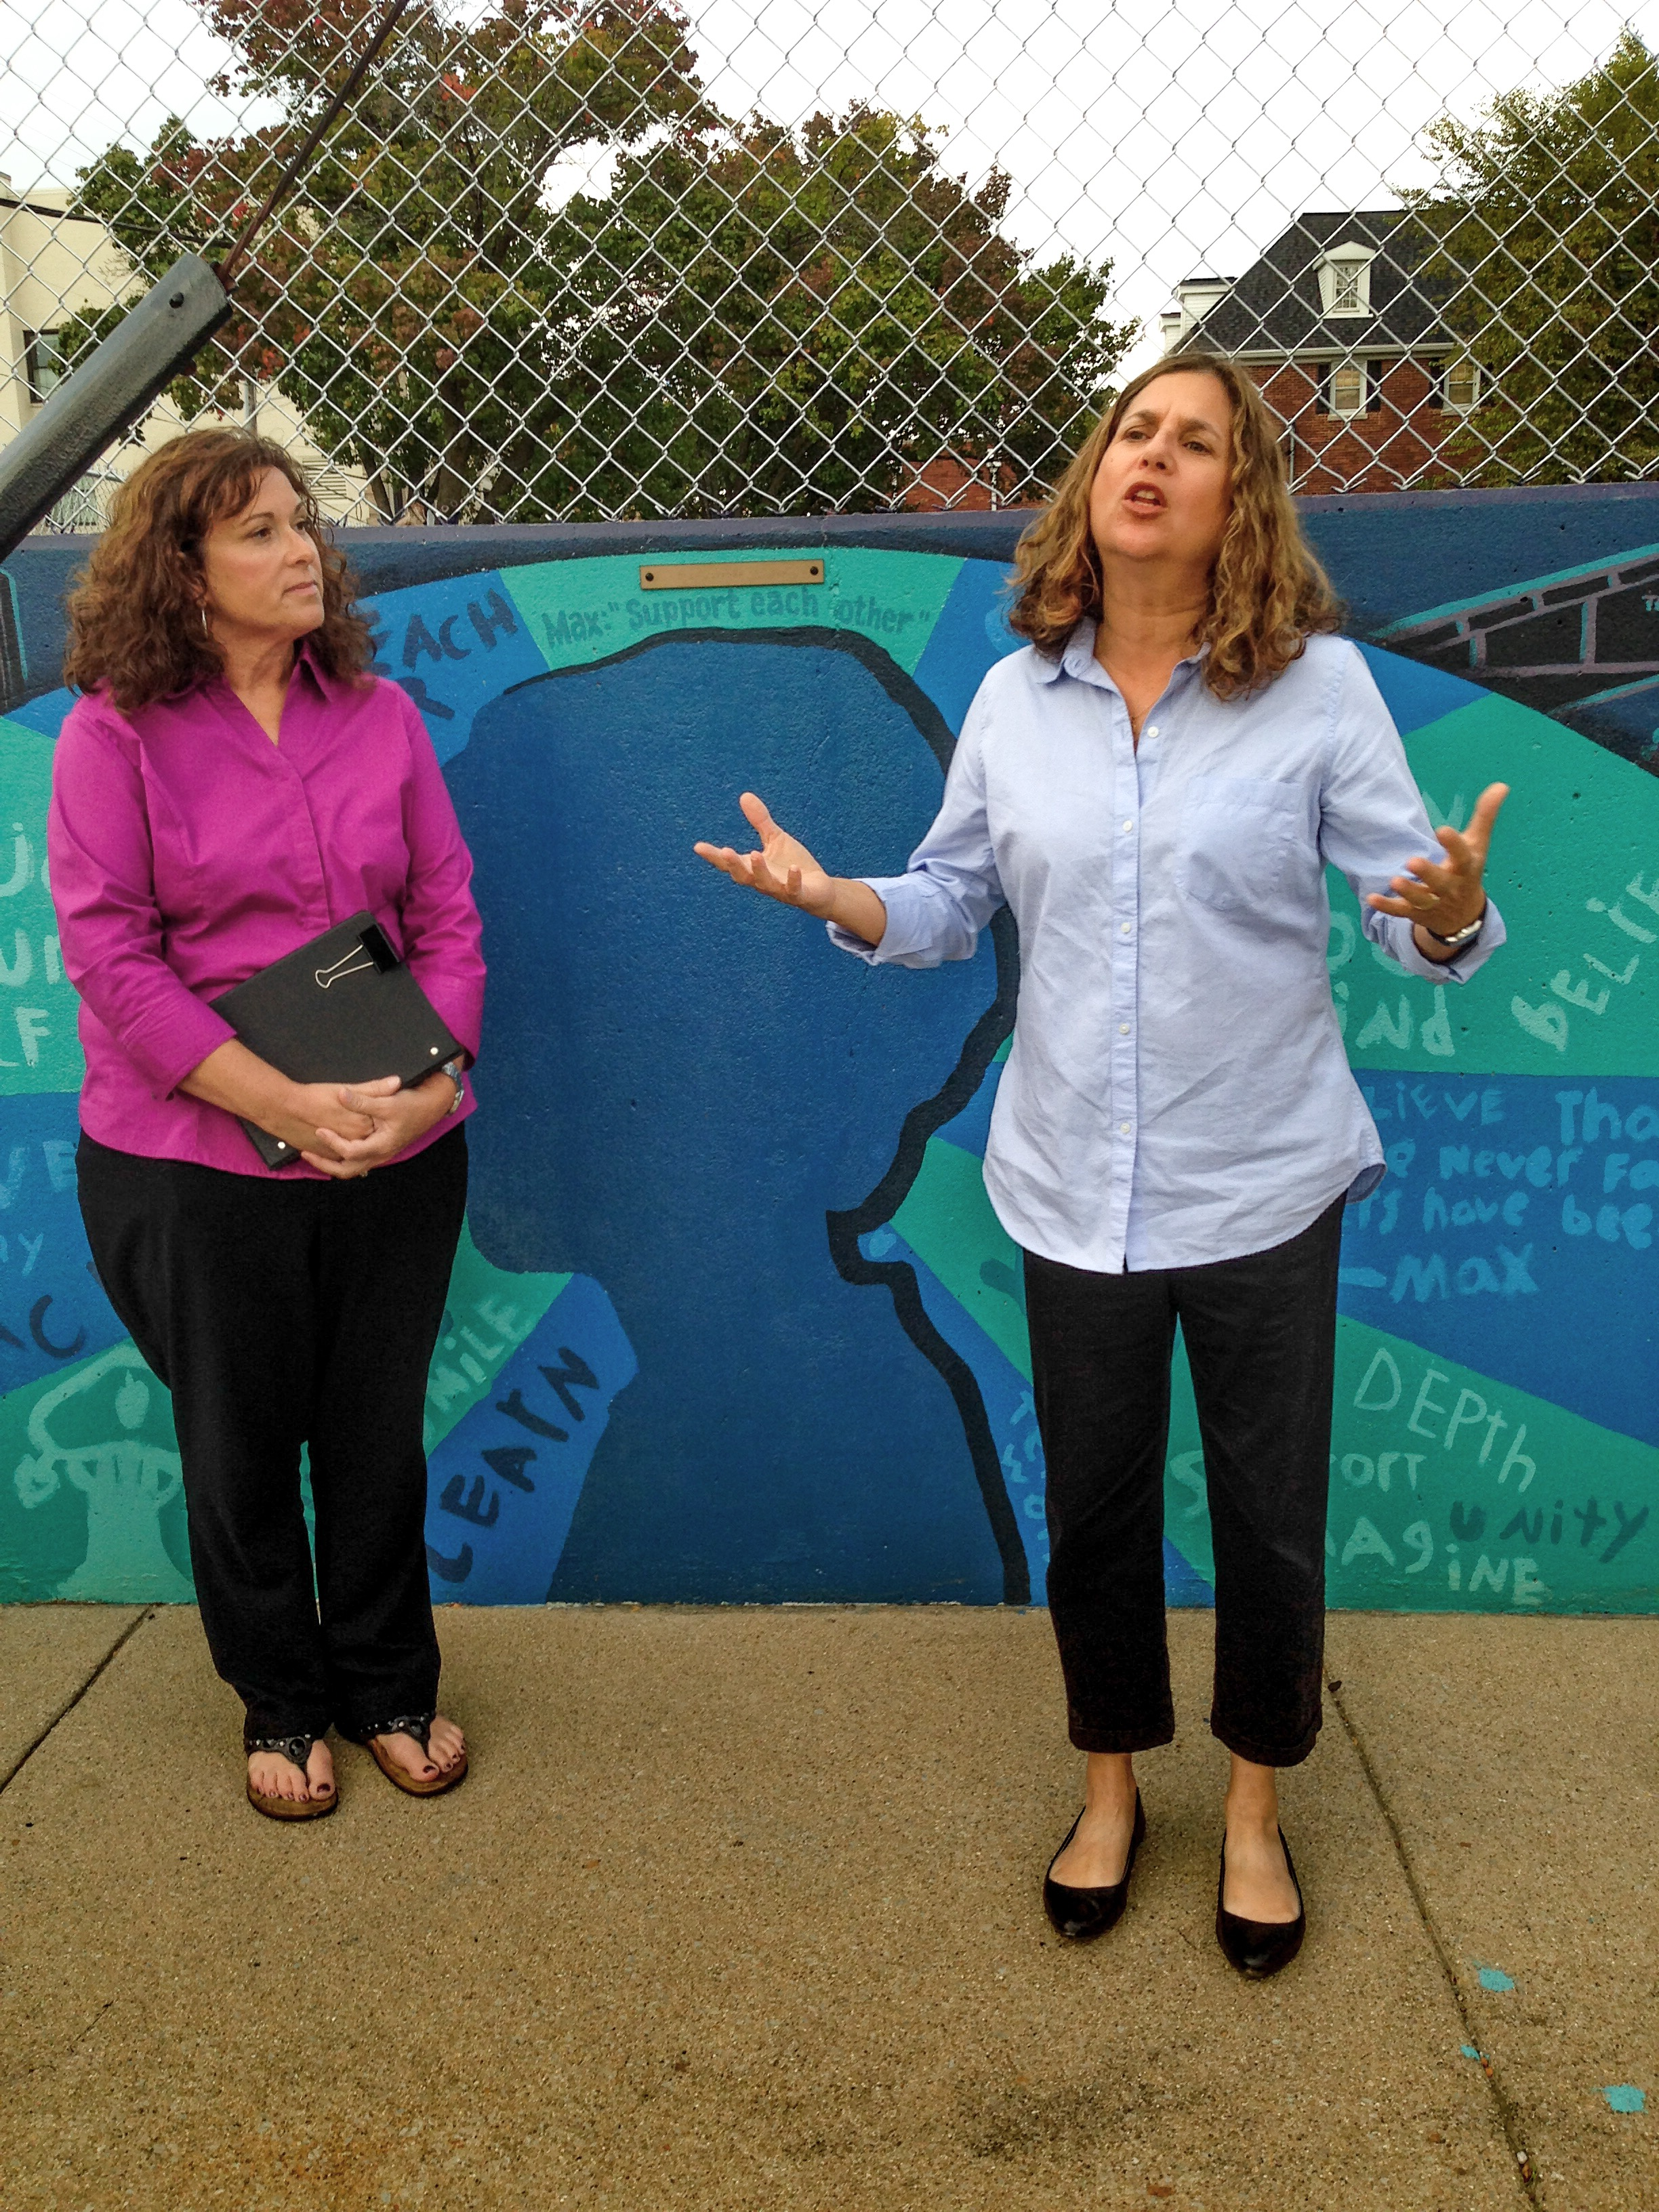 Moses Montefiore Congregation Rabbi Rebecca Dubowe, right,offers a blessing for the mural along with Bloomington First Christian Church Rev. Kelley Becker.